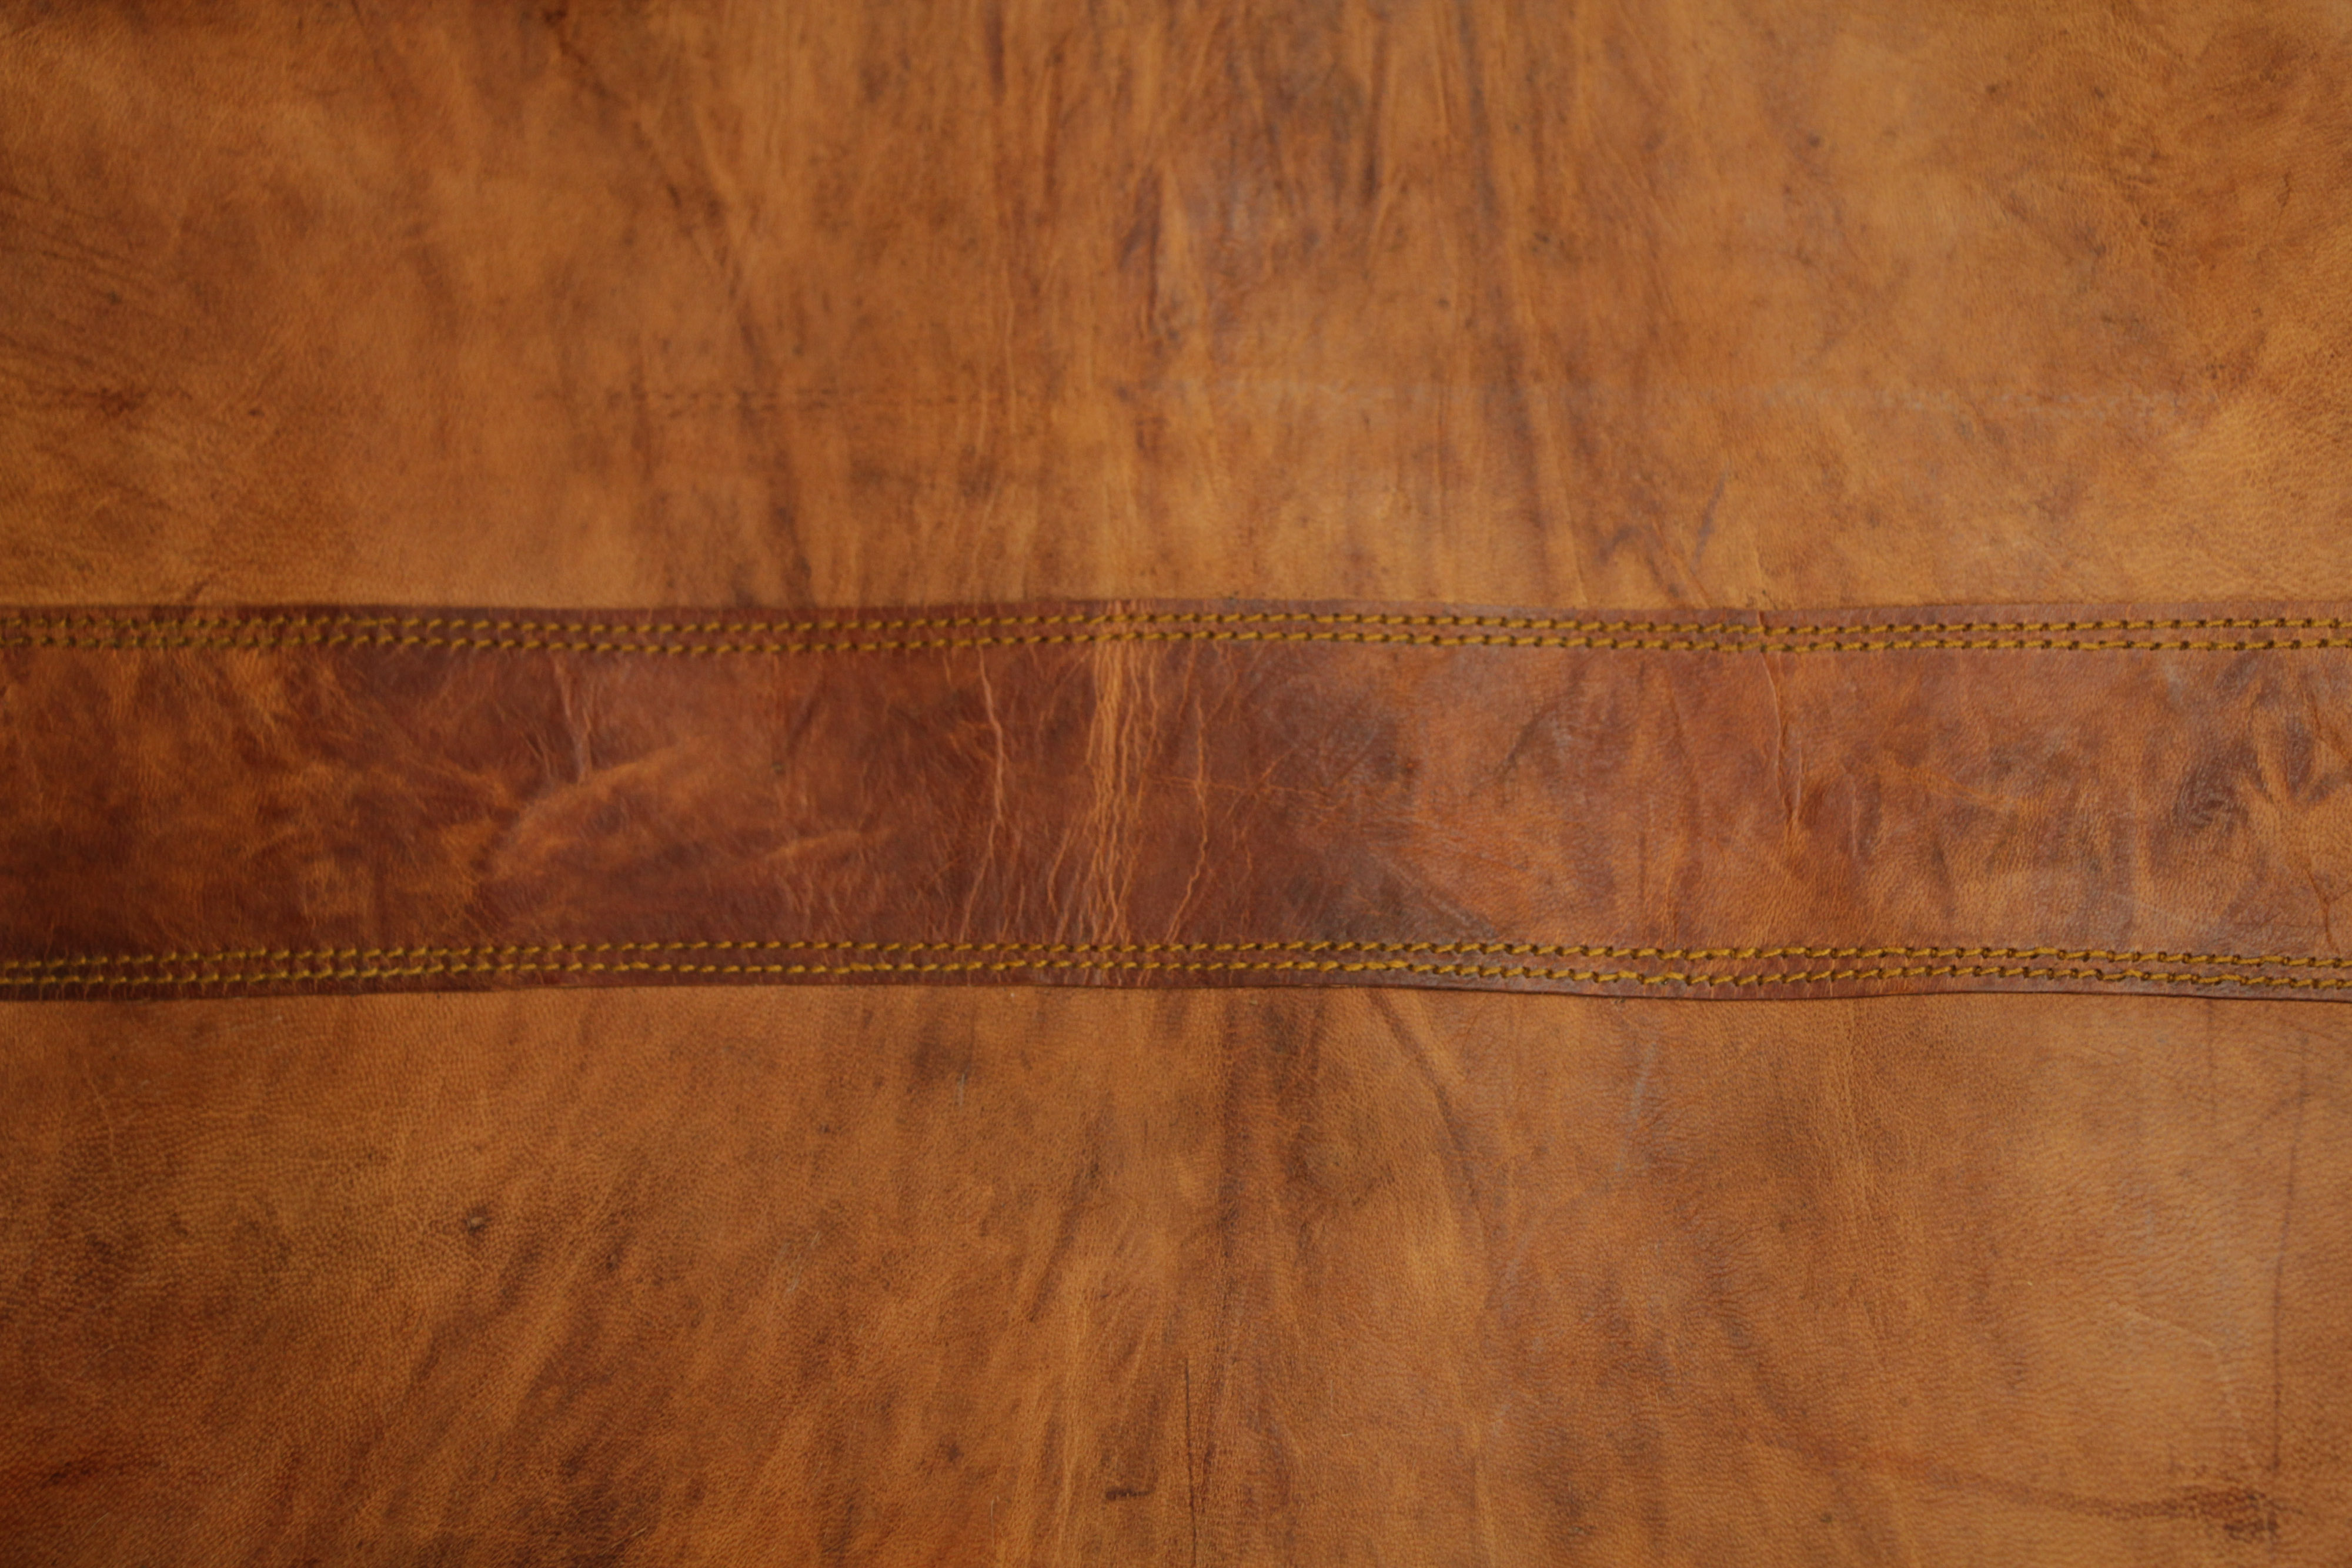 leather texture stitched stripe binding pattern amterial